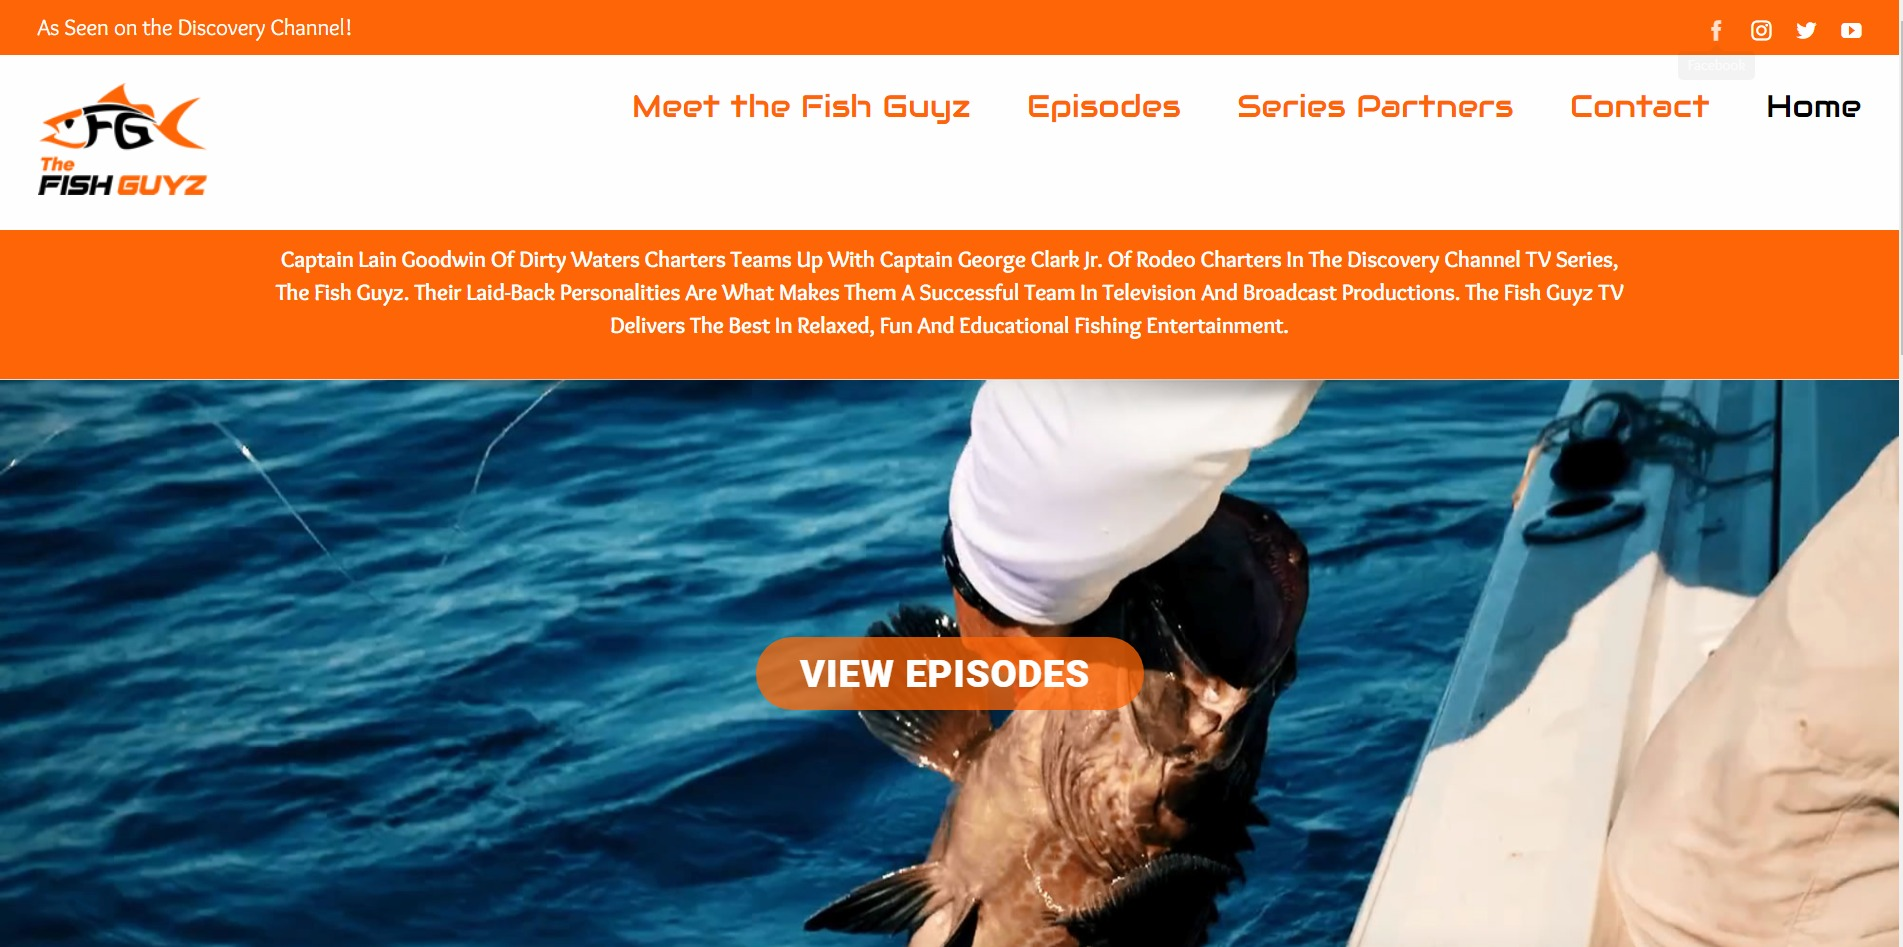 The Fish Guyz TV – As Seen on the Discovery Channel